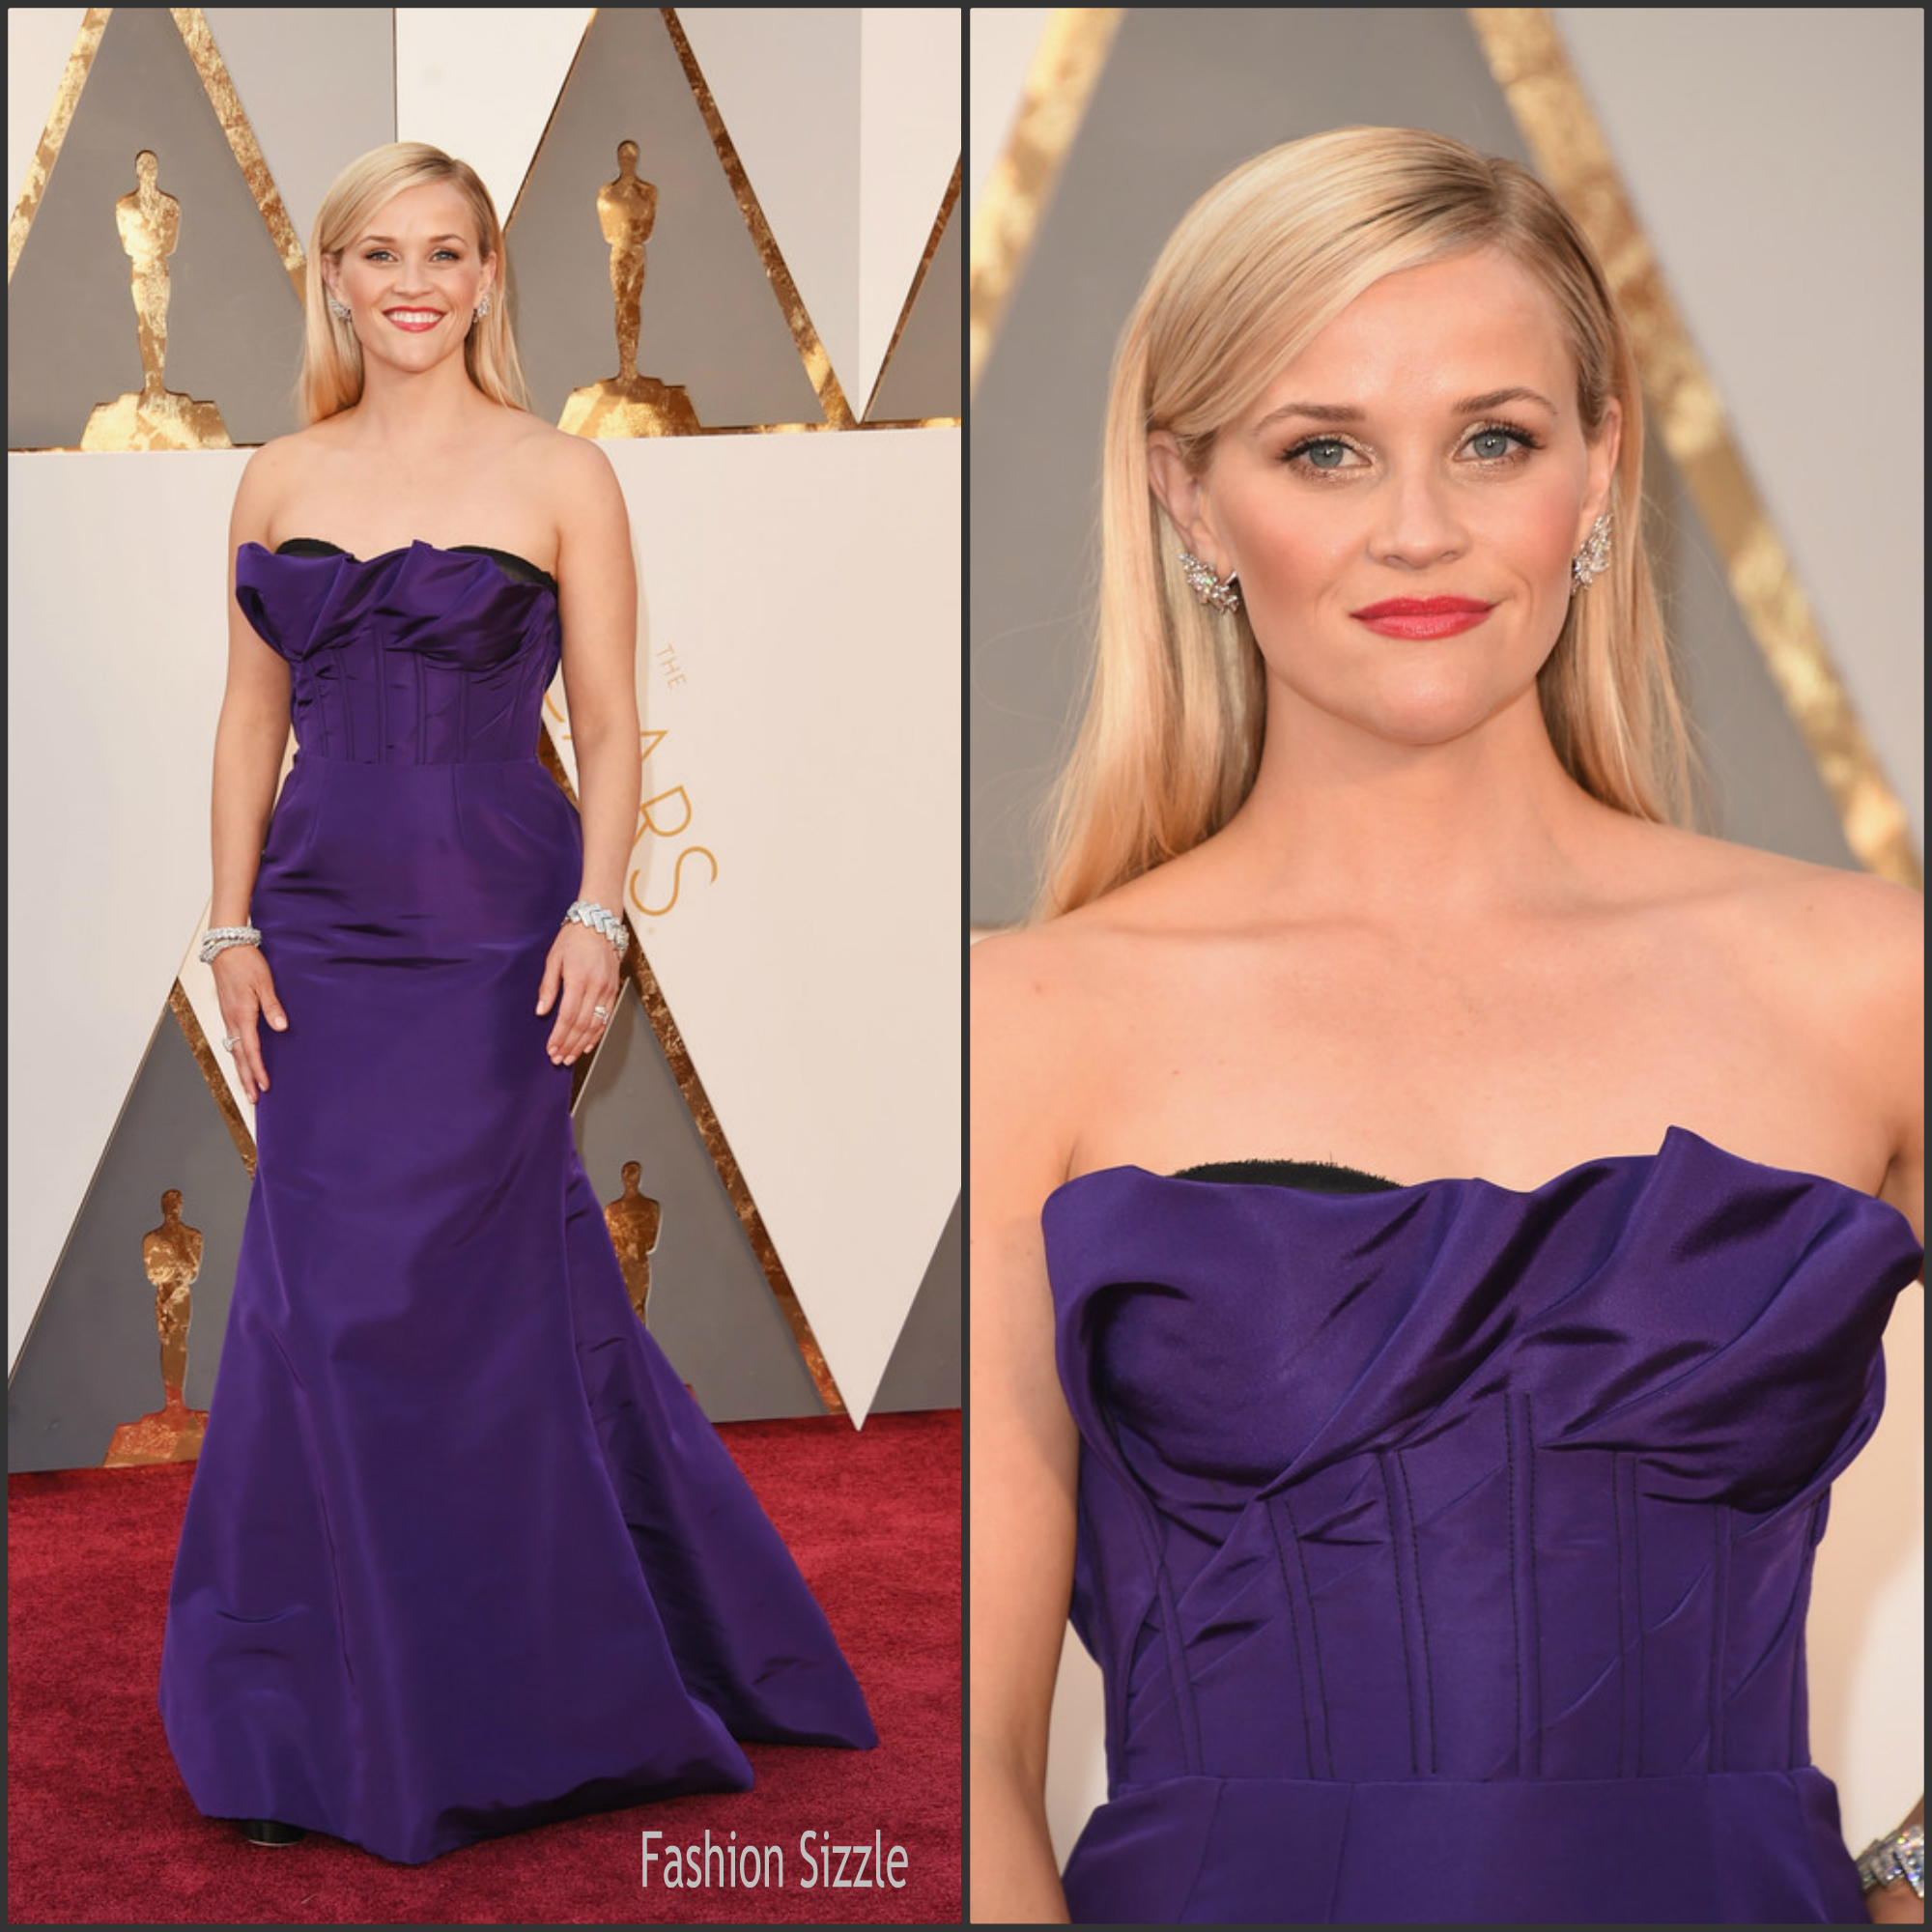 reese-witherspoon-in-oscar-de-la-renta-2016-academy-awards